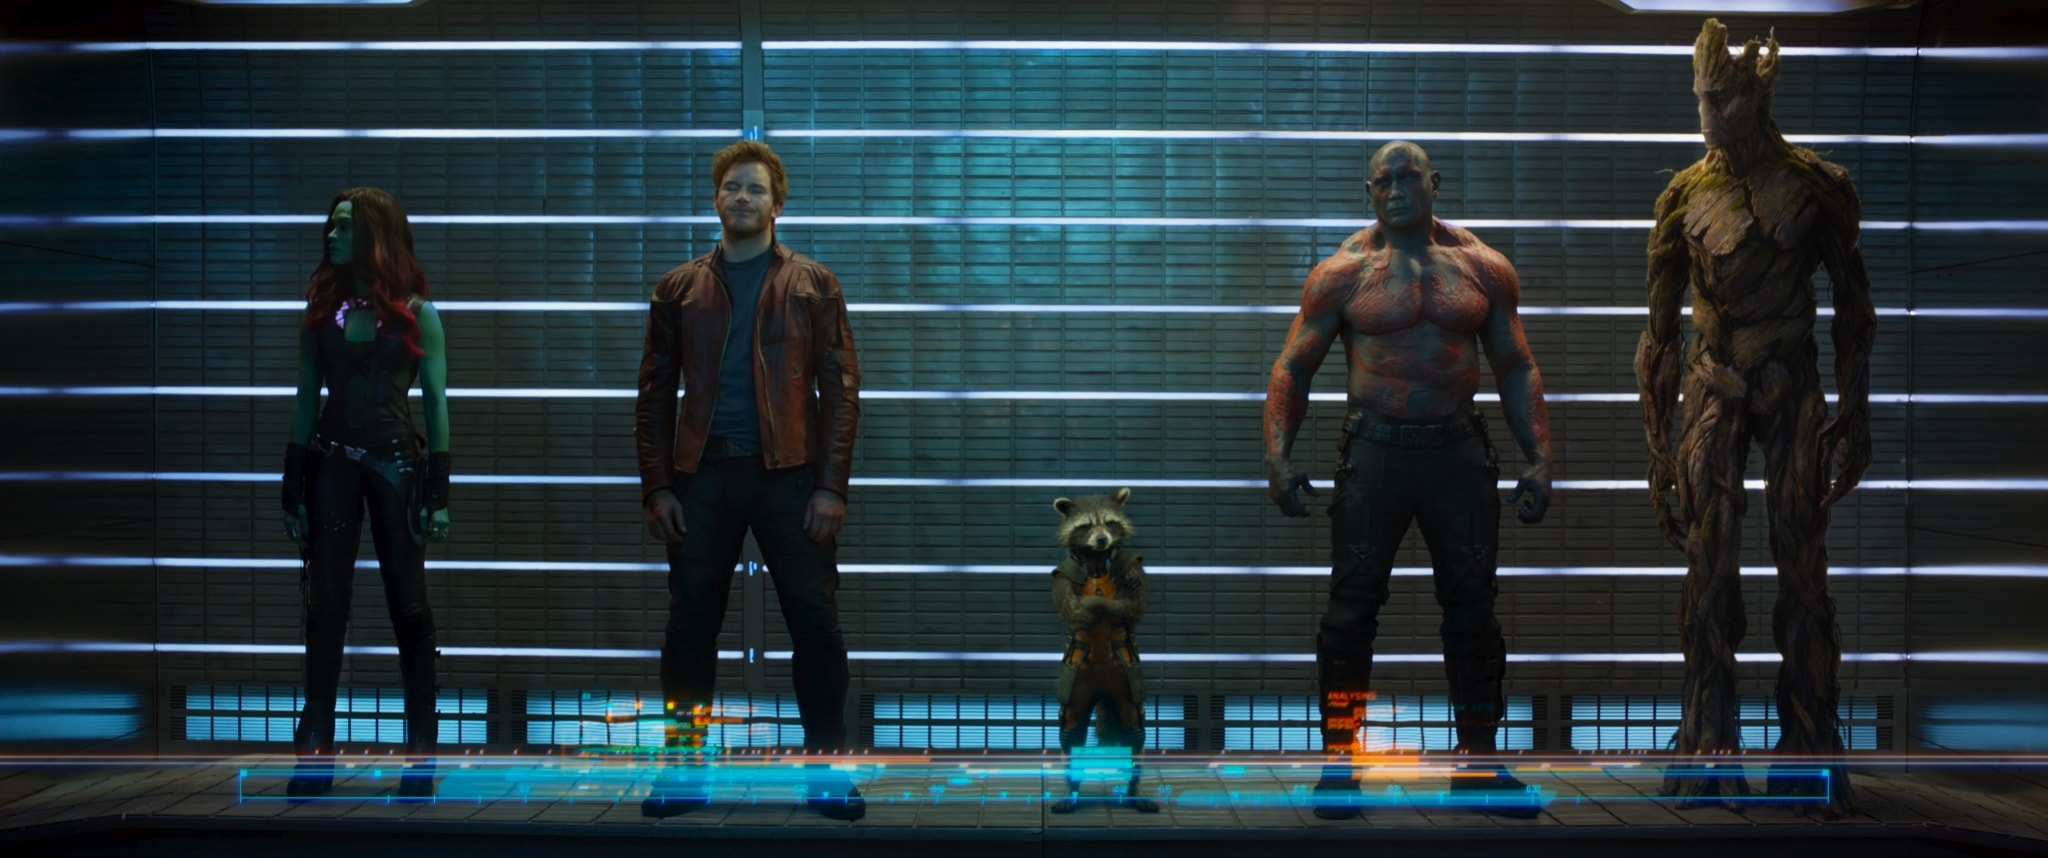 Guardians Of The Galaxy Hd Wallpapers 7wallpapers Net